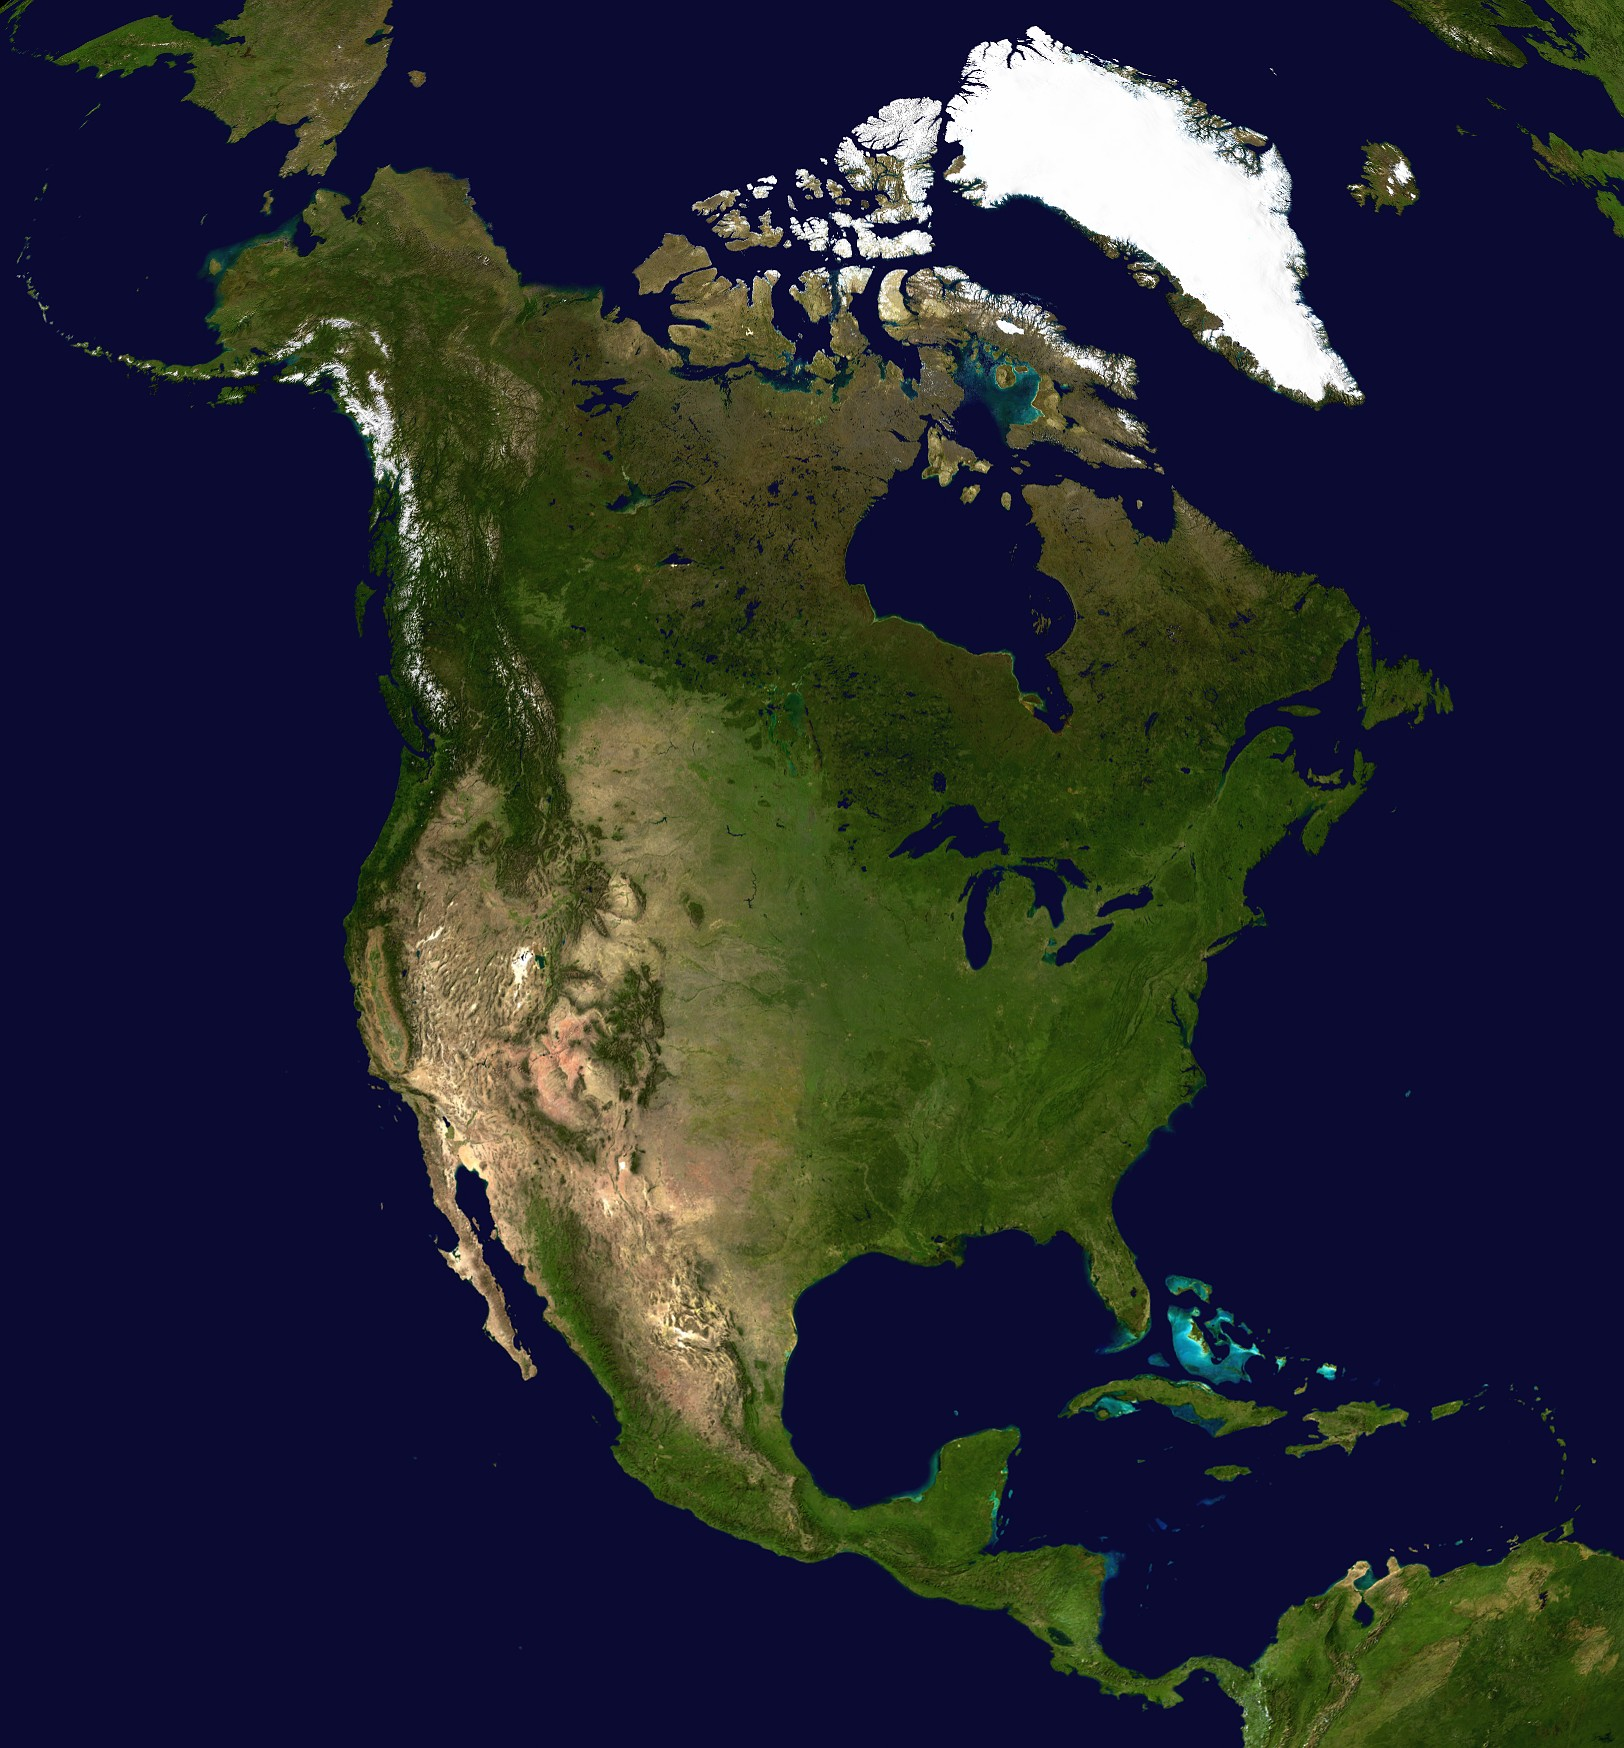 satellite view of North American continent